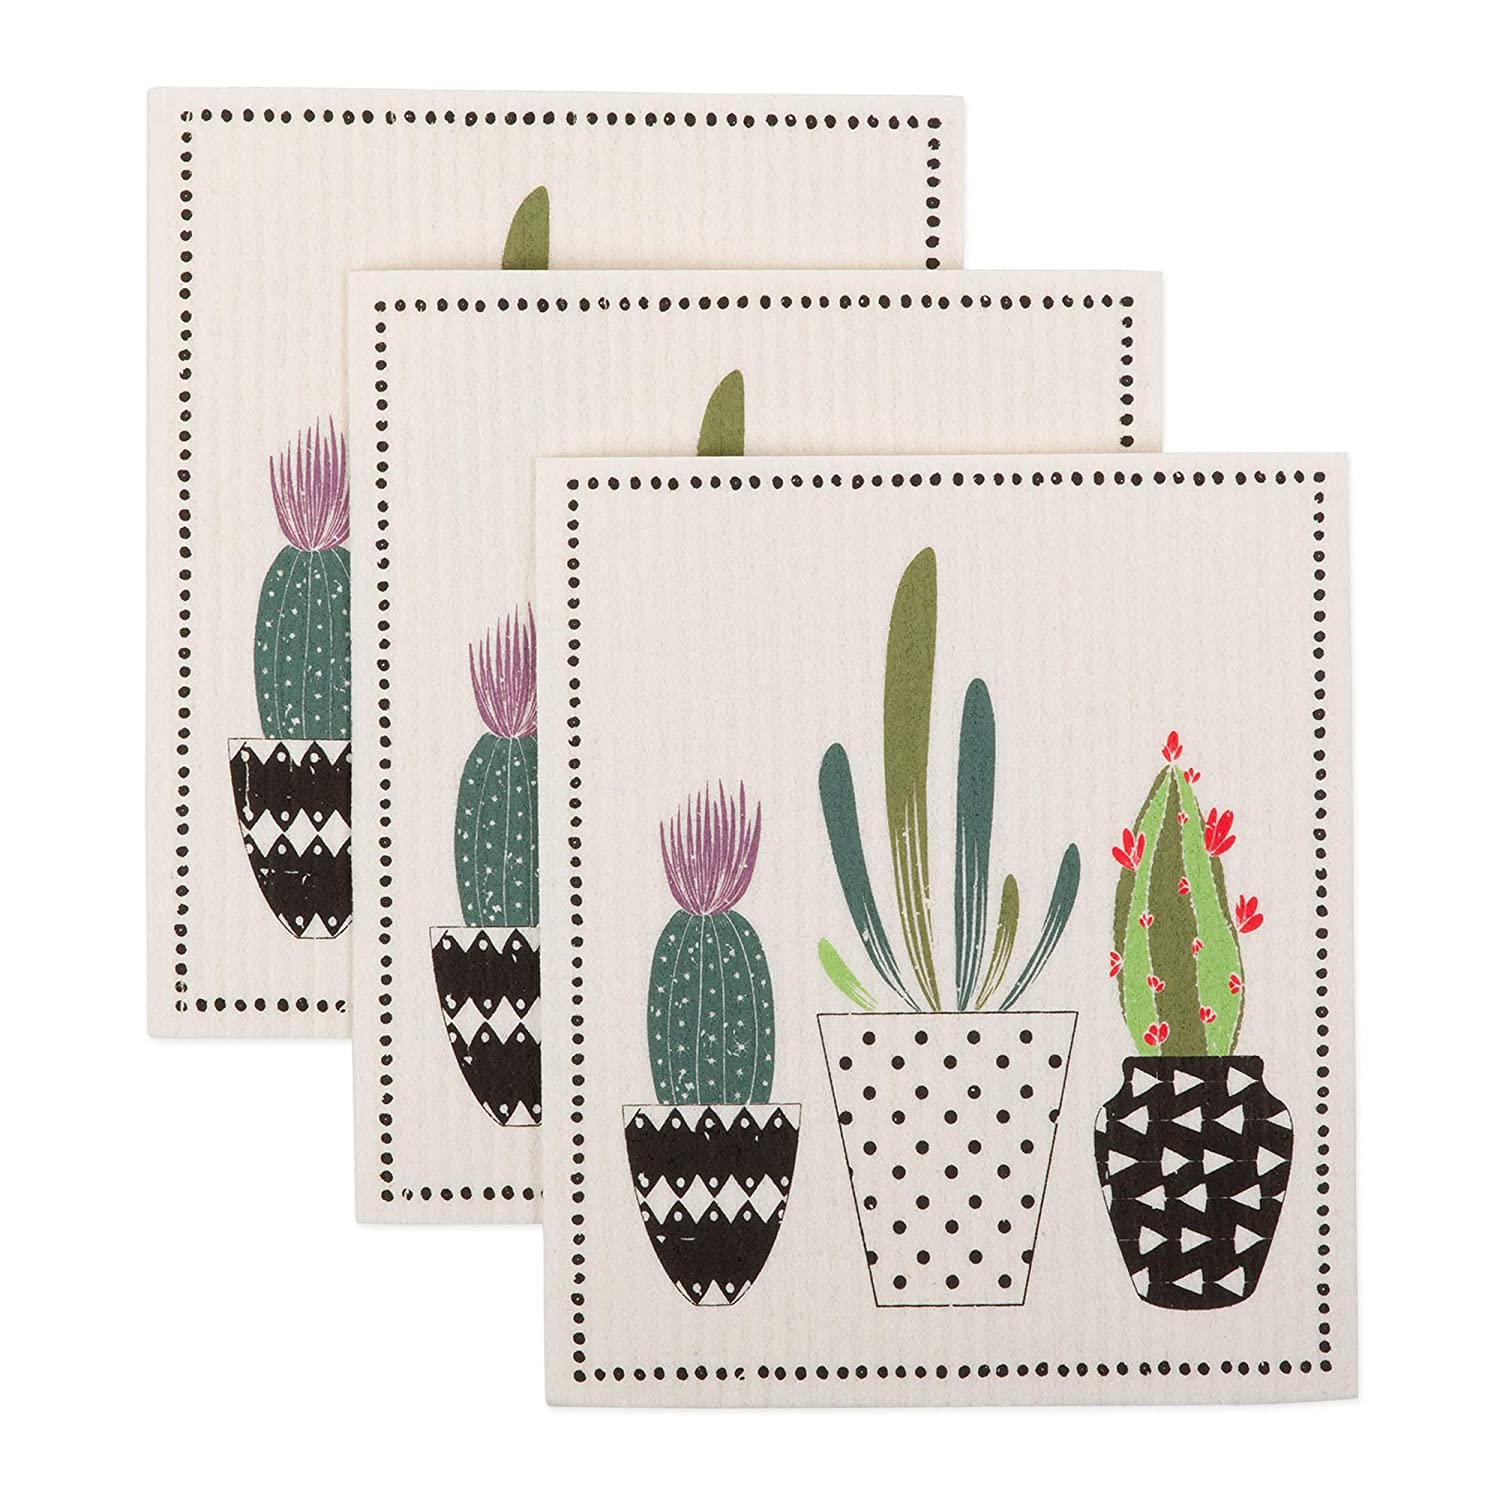 DII CAMZ11079 Swedish Dishcloths, 100% Natural Cellulose, Set of 3, Reusable, Dishwasher and Microwave Safe, Environmentally Friendly Dish Cloths 7.75x6.75 Succulents